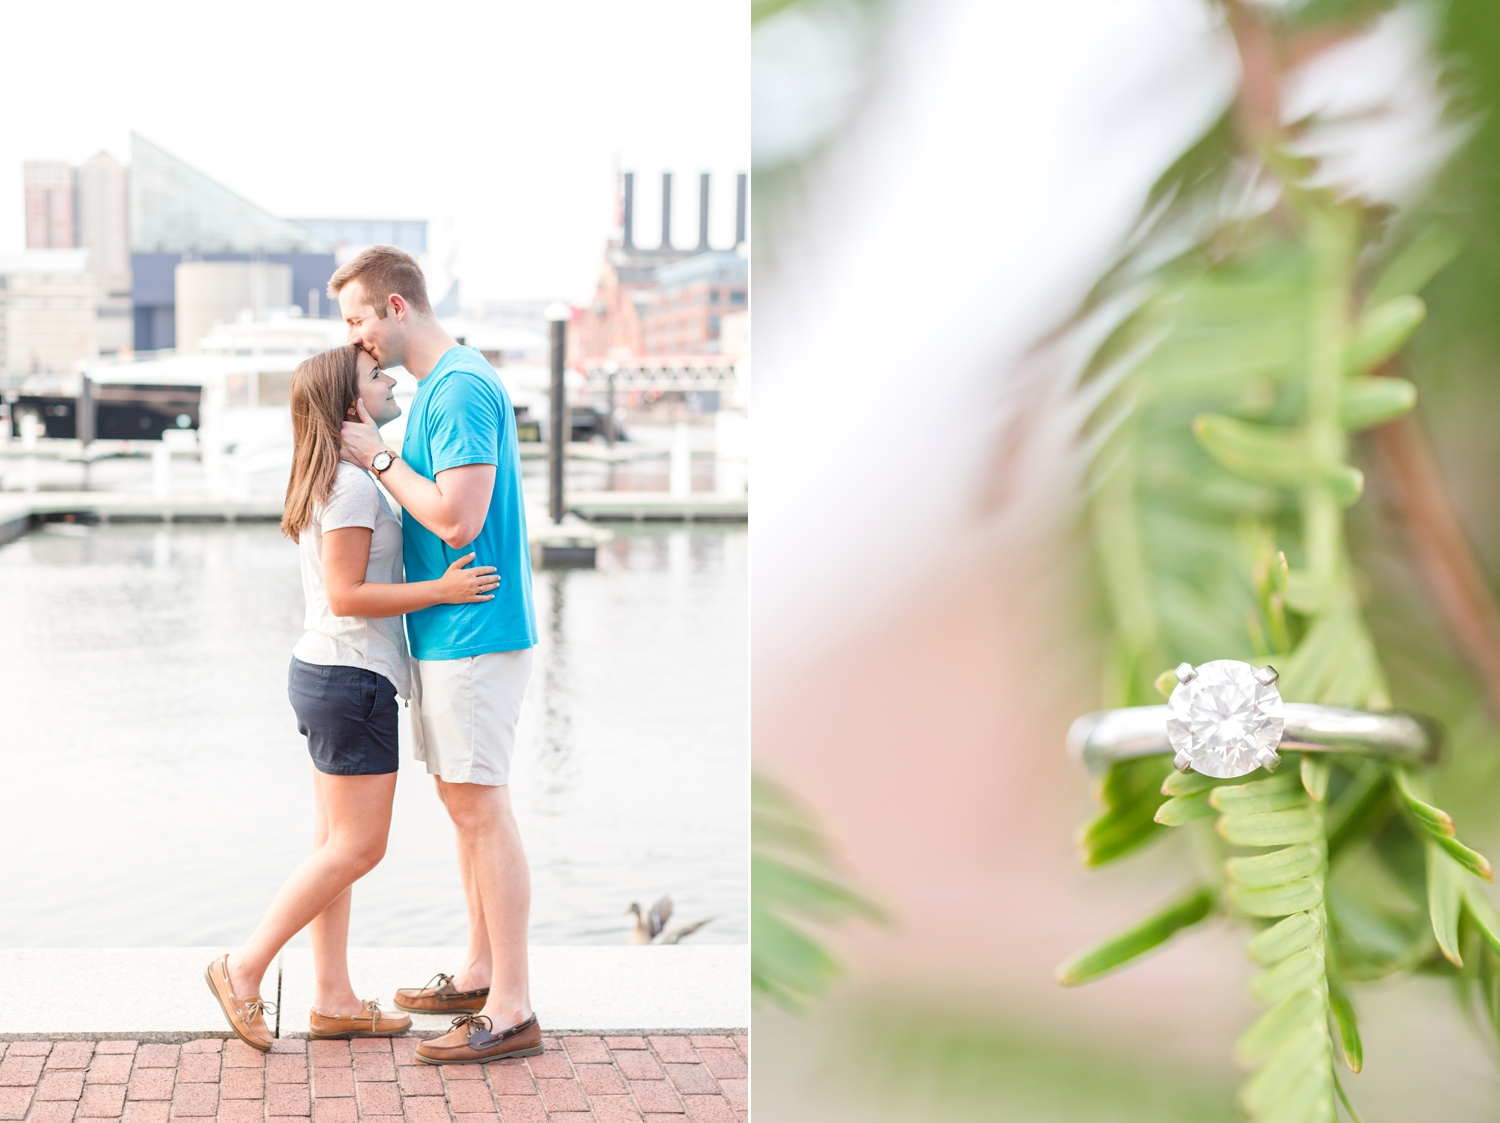 Jamie Wood & Daniel Schindler Engagement-165_Downtown-Baltimore-Maryland-engagement-photographer-anna-grace-photography-photo.jpg